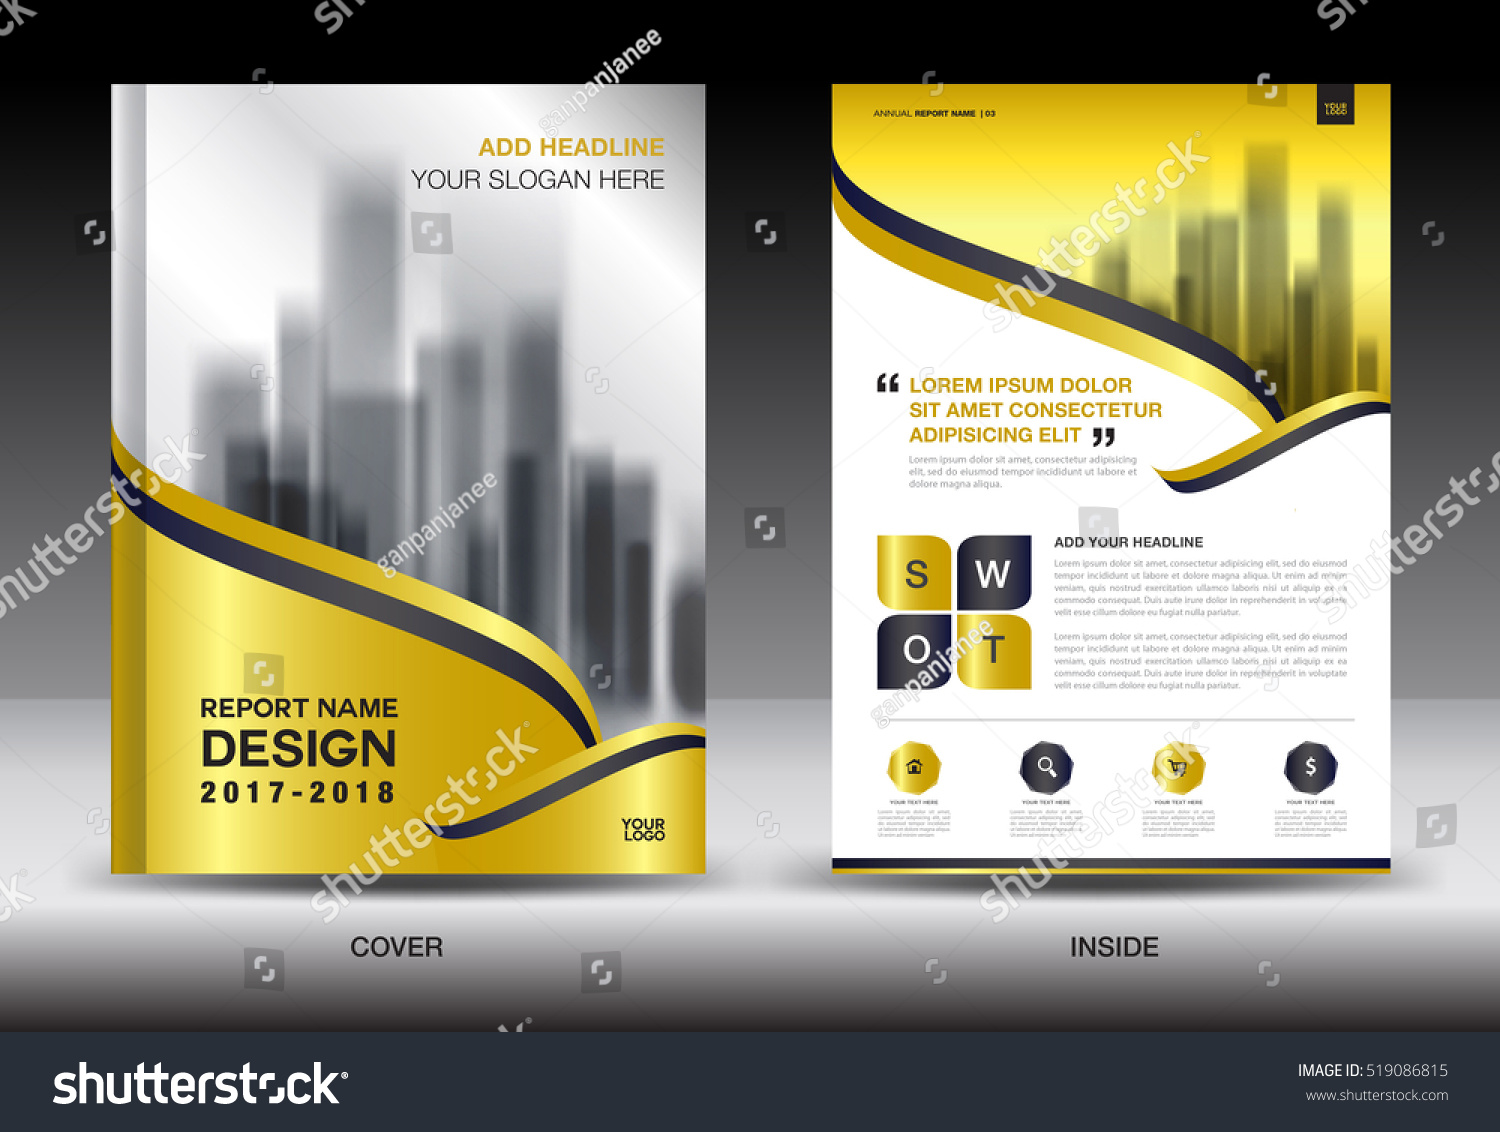 annual report brochure flyer template gold stock vector  annual report brochure flyer template gold cover design business advertisement magazine ads